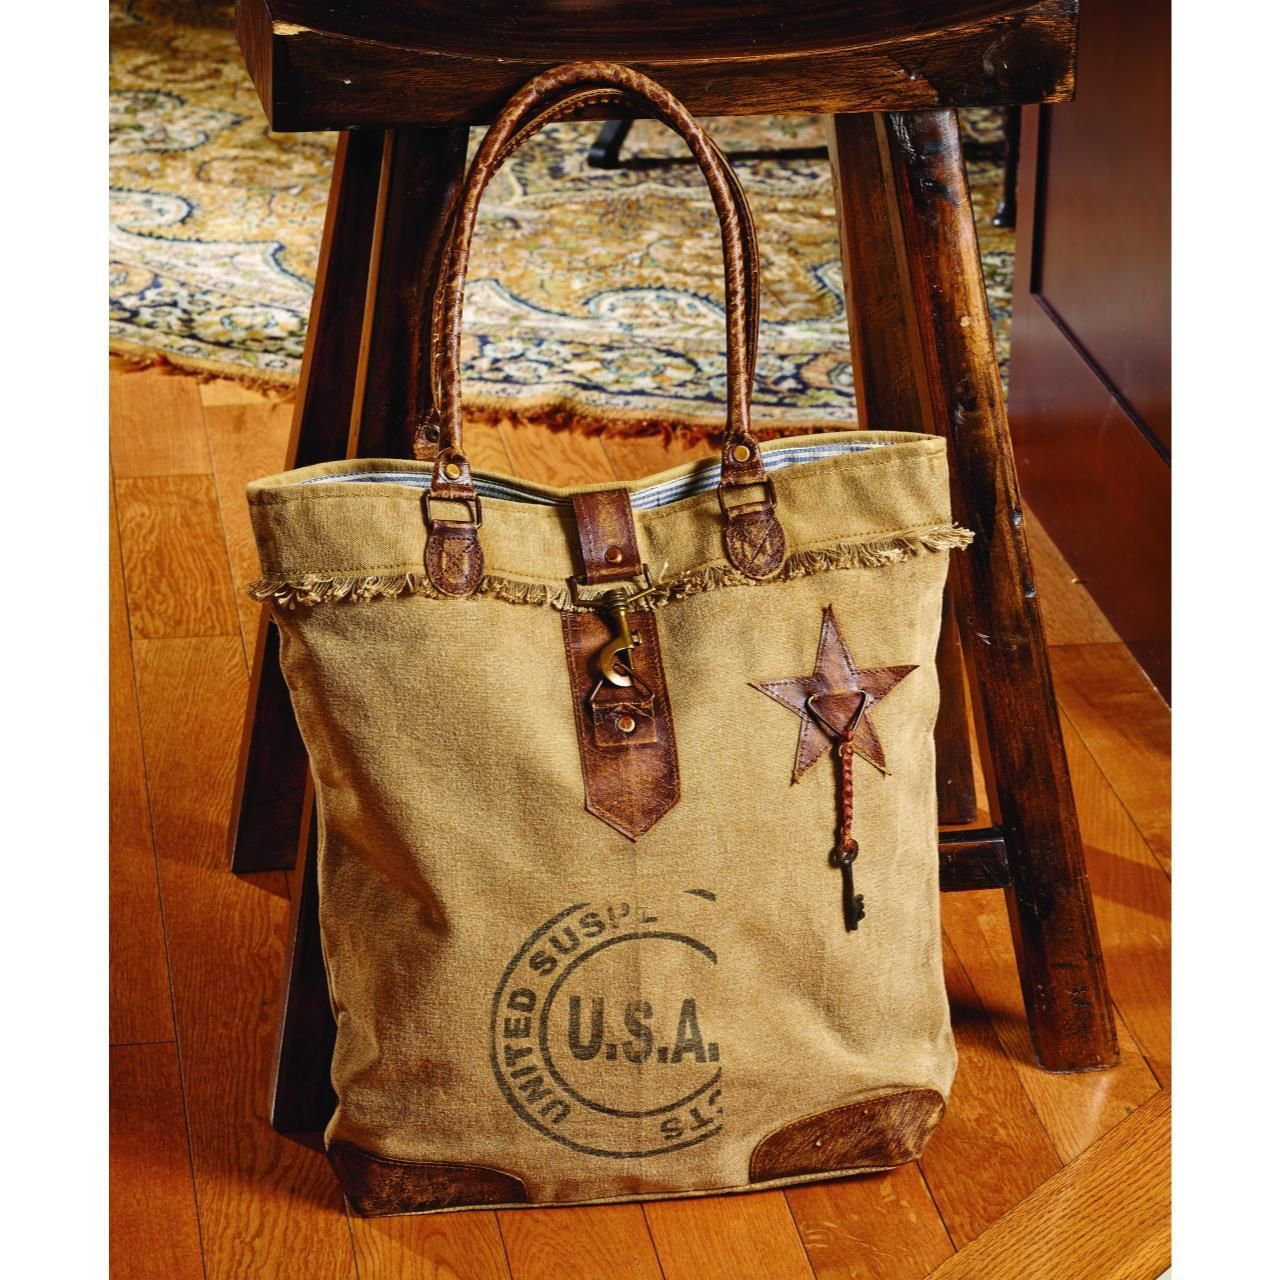 Pin by Country Village Shoppe on Upcycled Canvas Totes ...